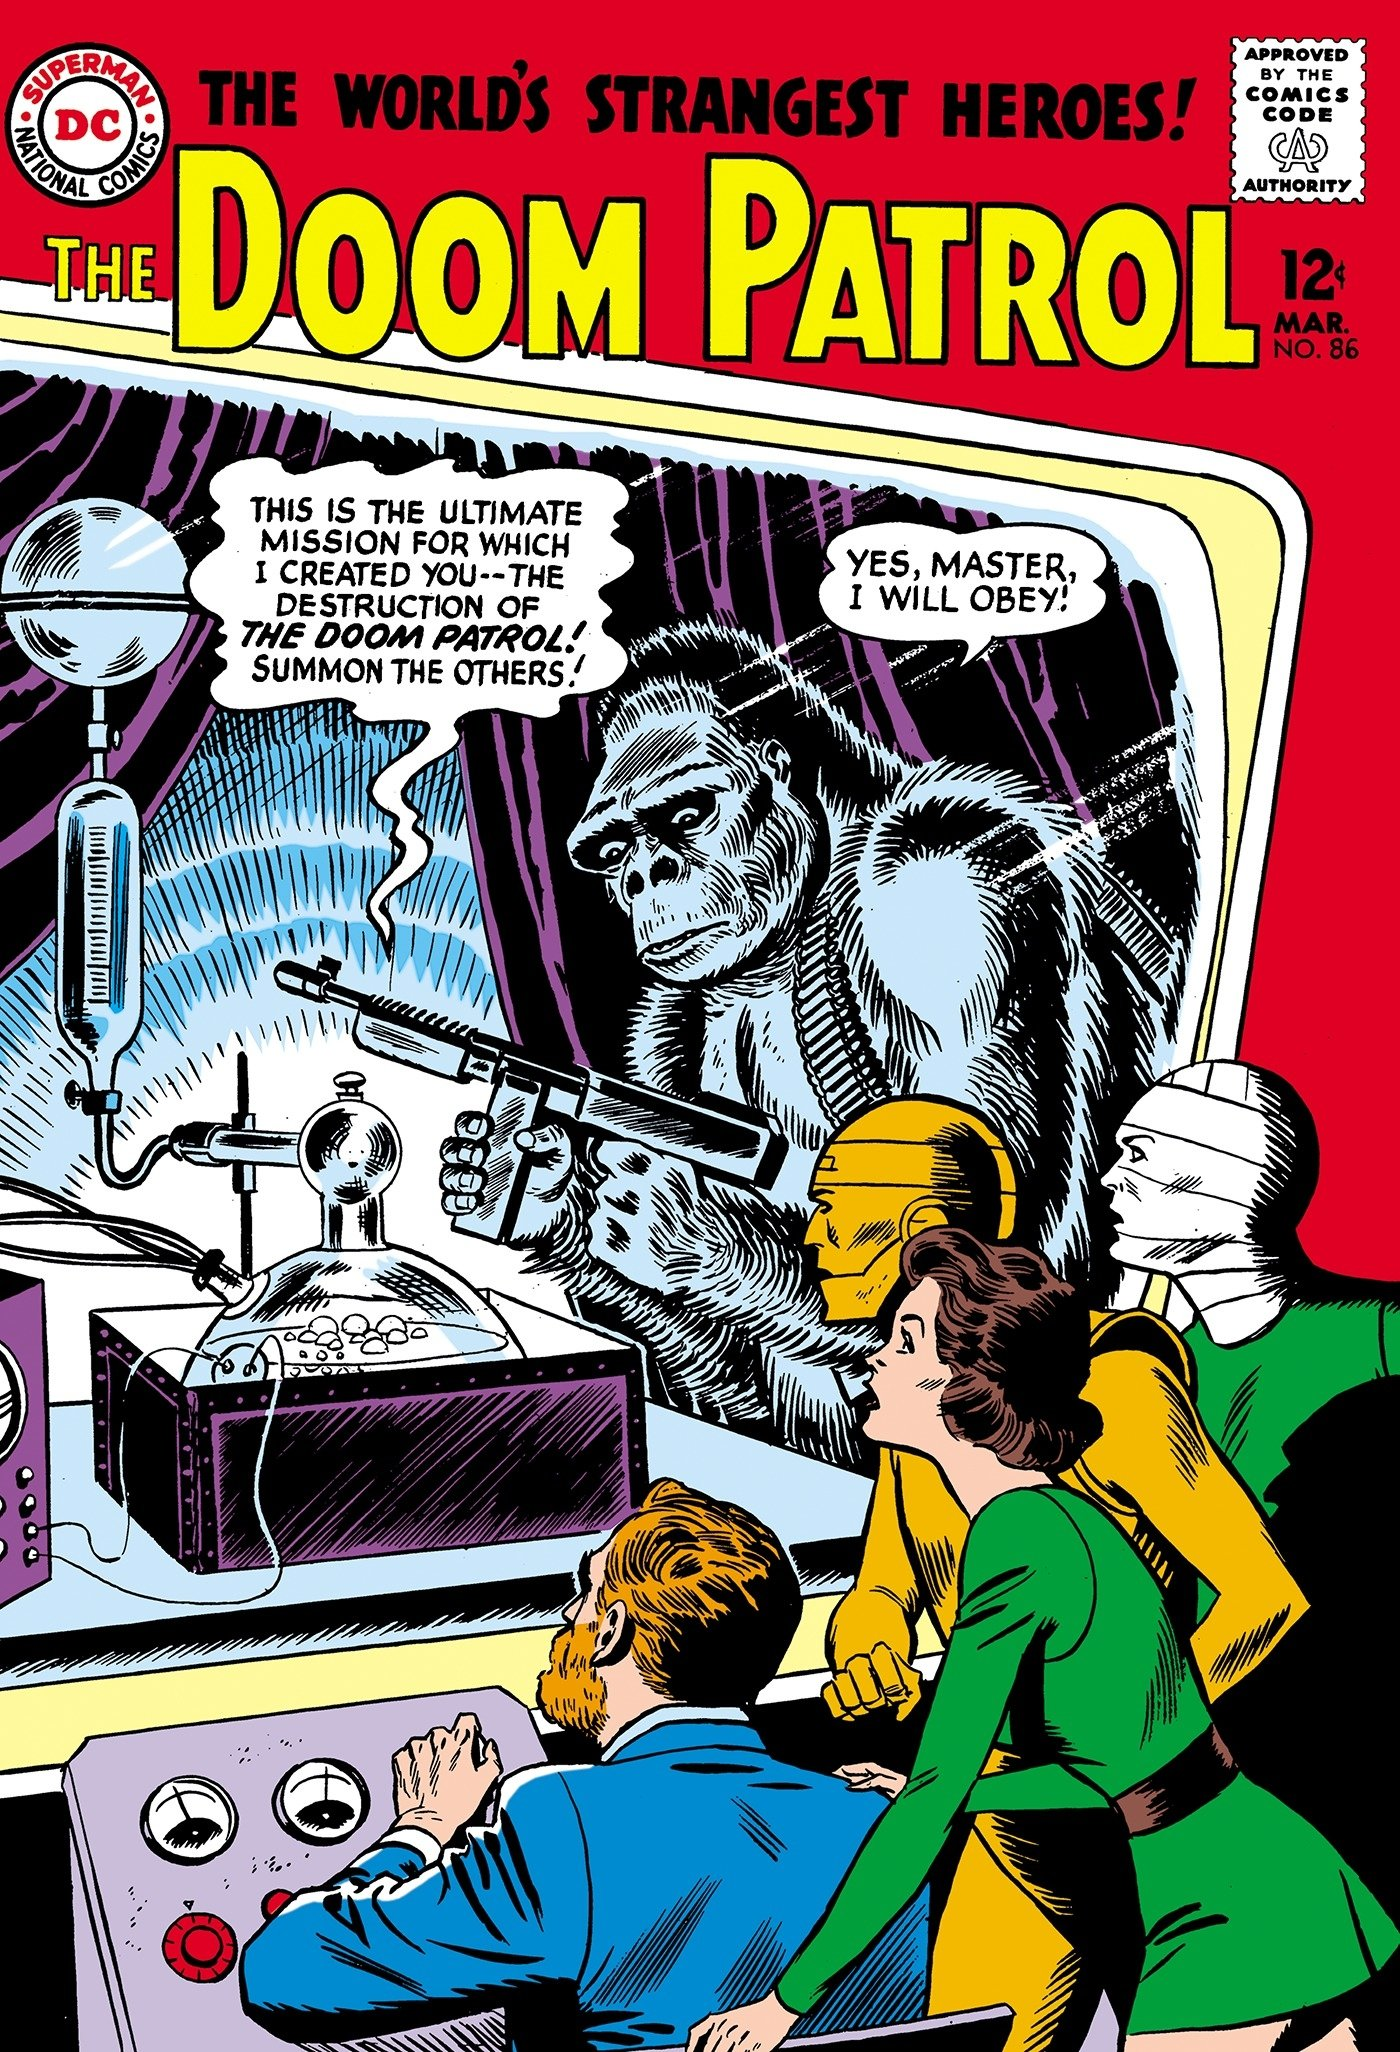 Amazon Com Doom Patrol The Silver Age Vol 1 9781401281113